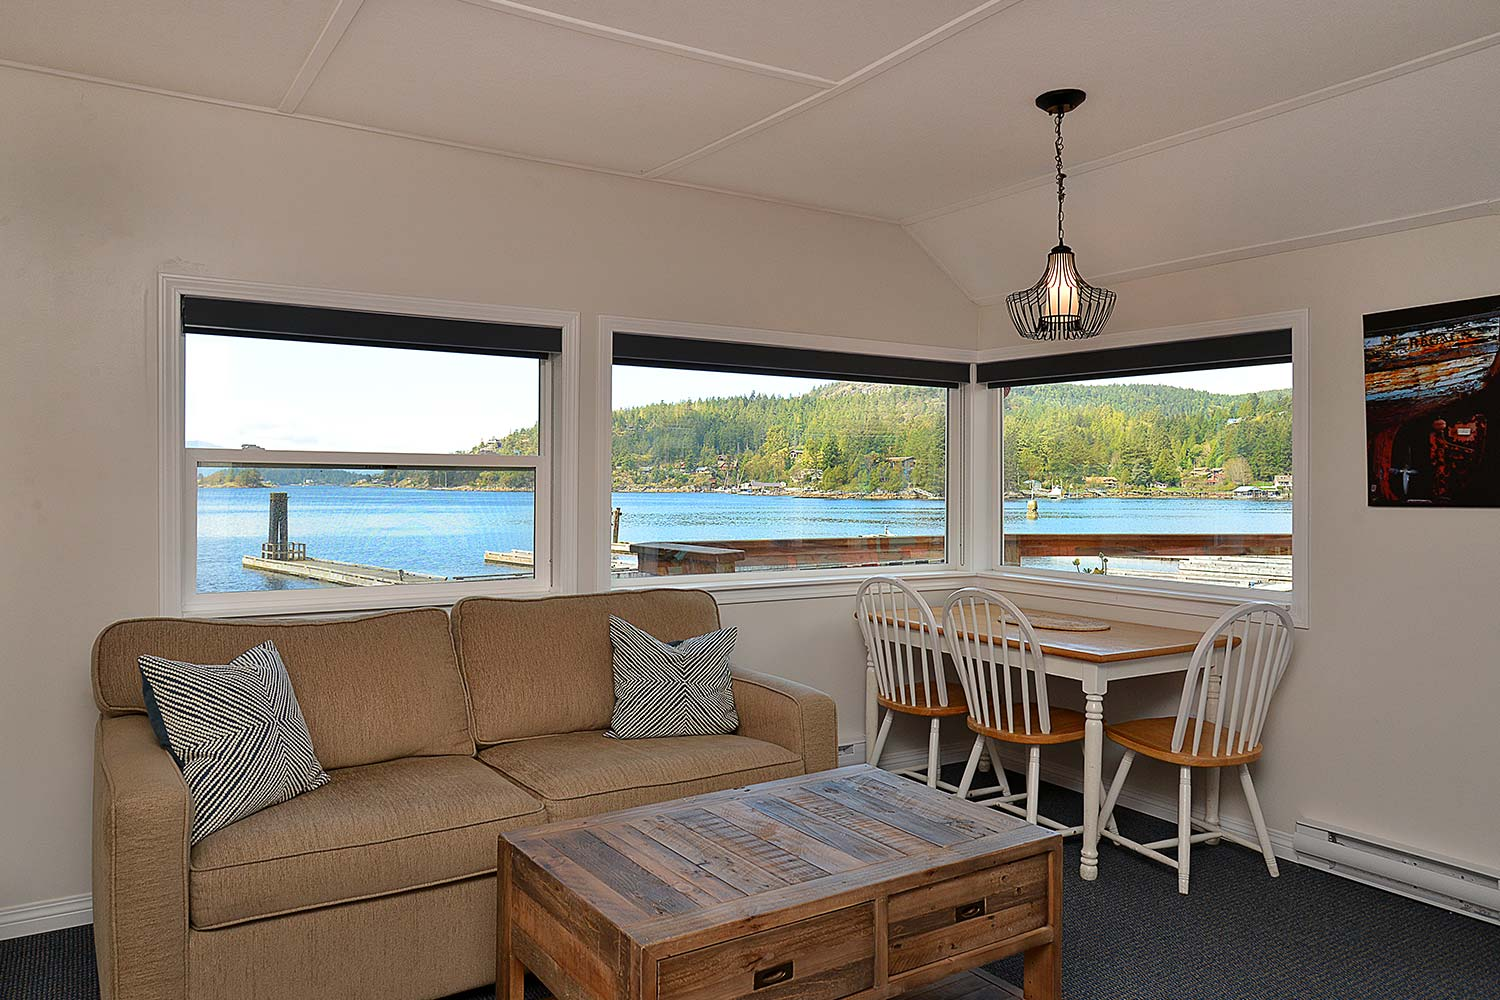 The Prawn Palace living room has a pull-out sofa bed and a coffee table, and features incredible views of Pender Harbour.